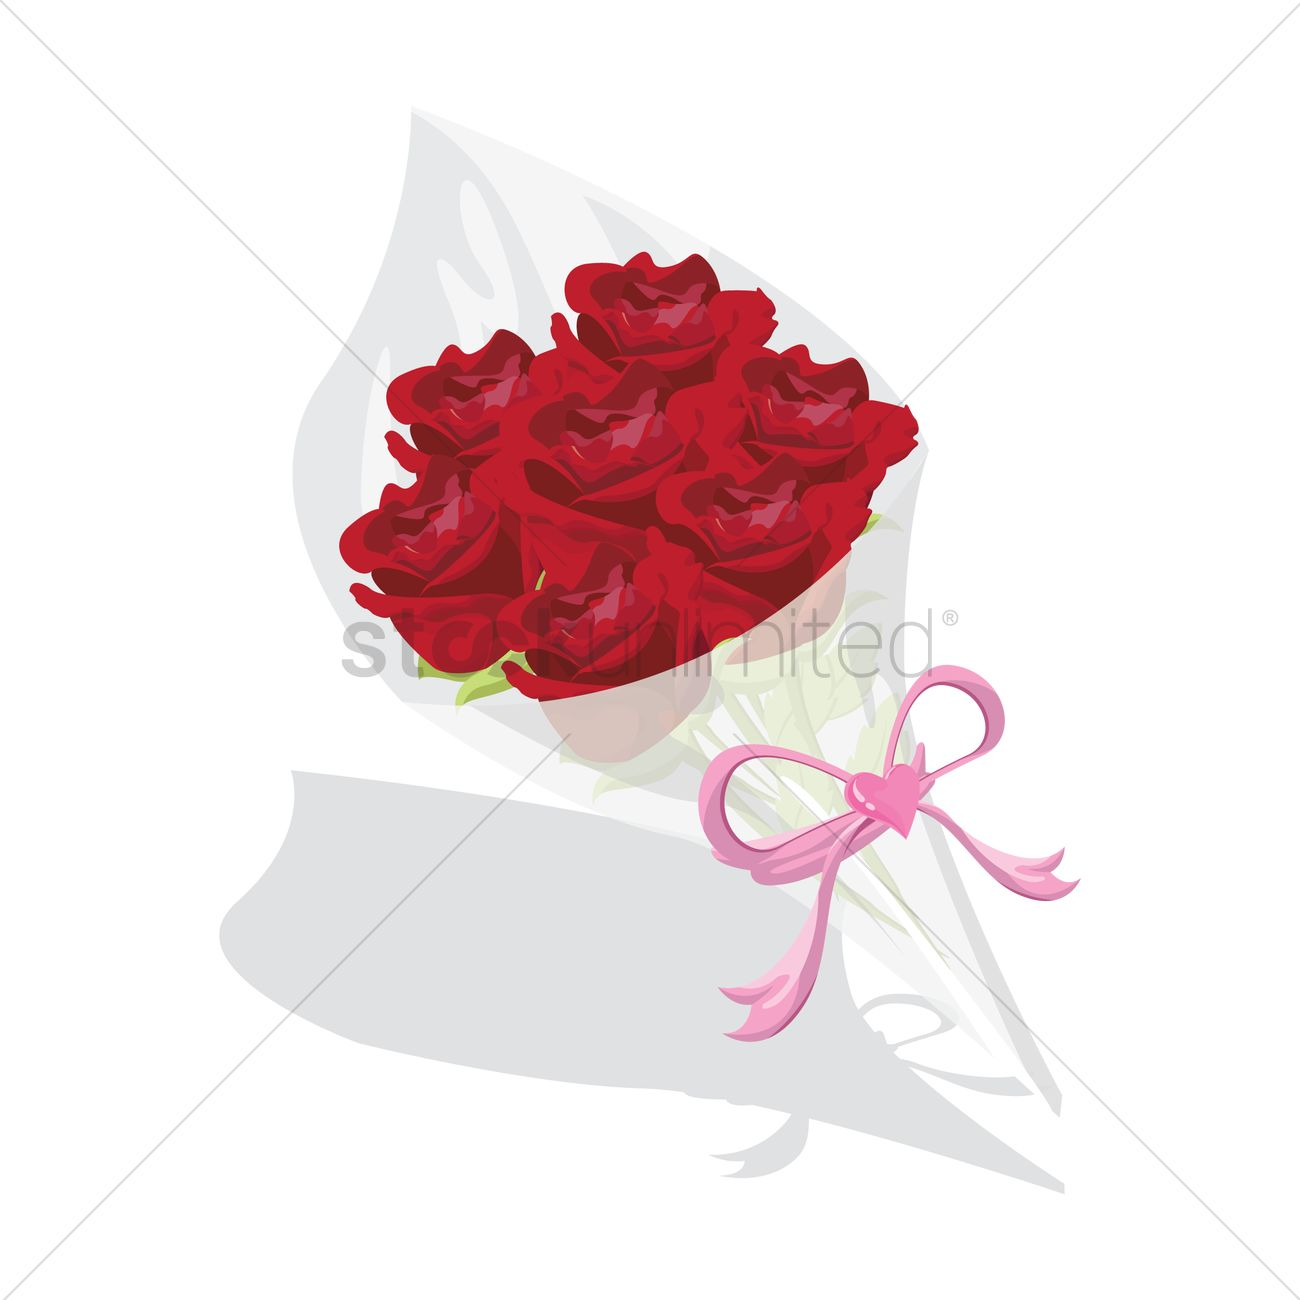 Flower Bouquet Vector Image 1298367 Stockunlimited